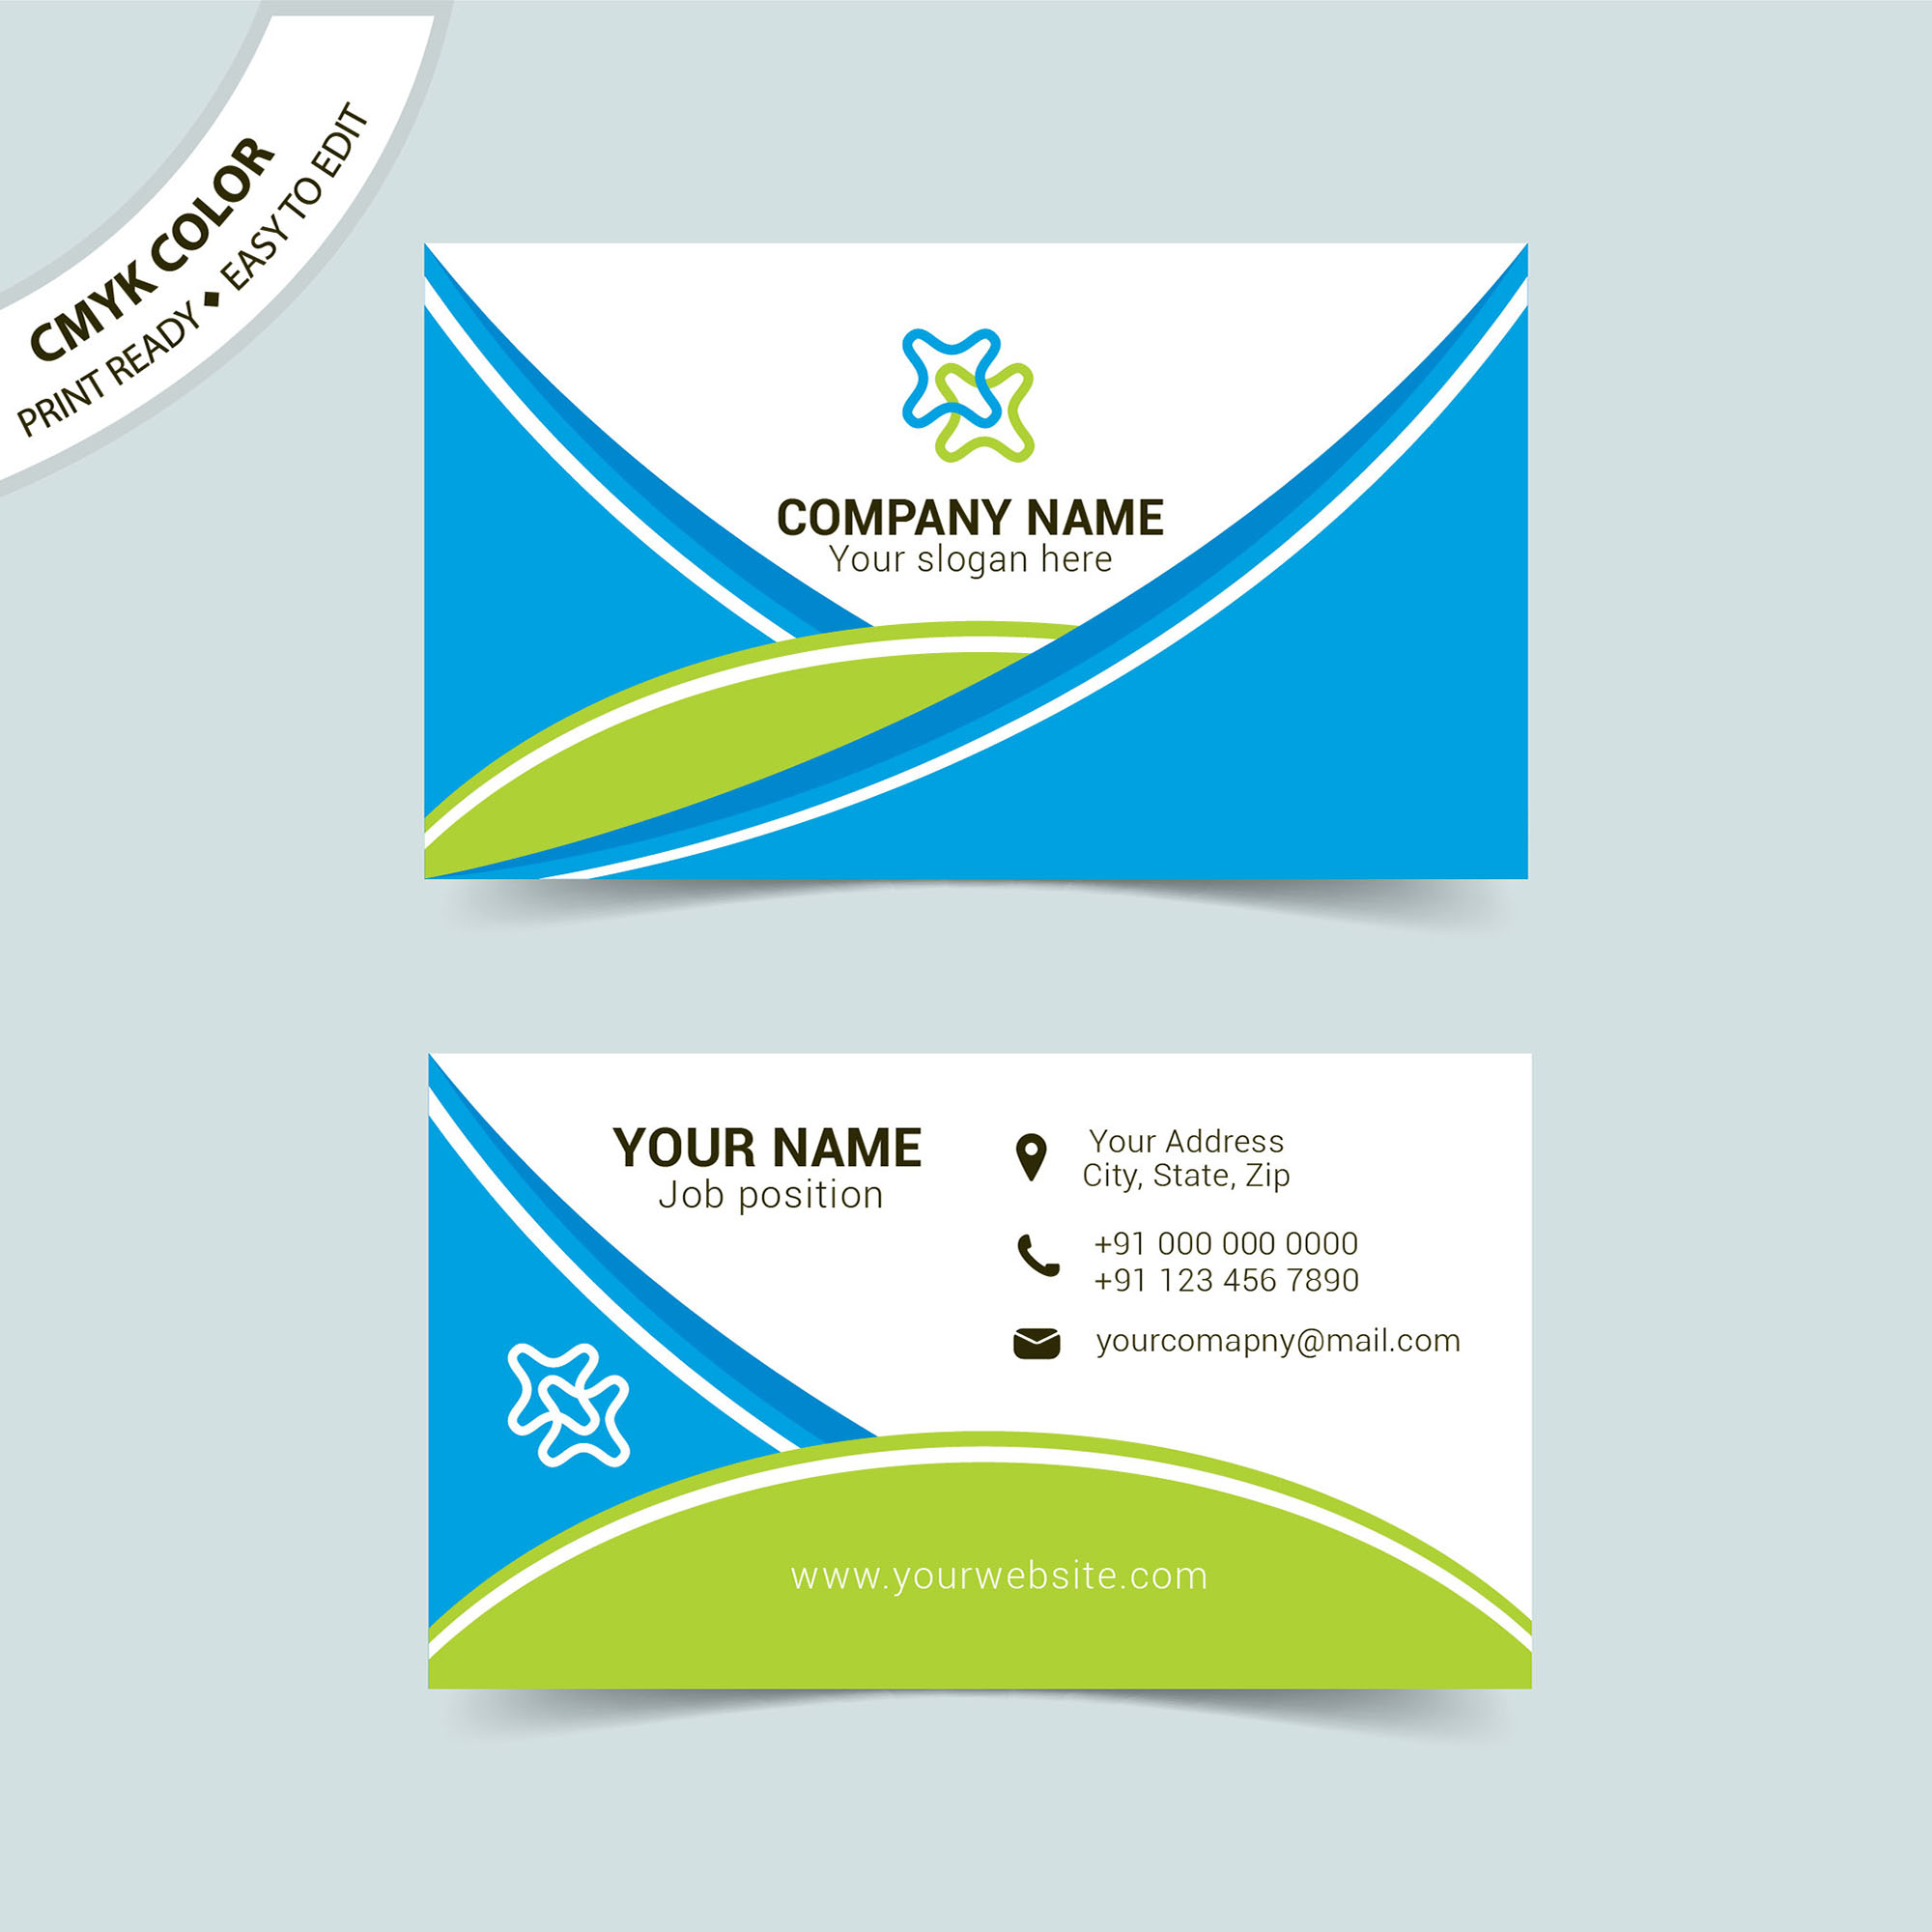 Creative business card vector template free download wisxi business card business cards business card design business card template design templates accmission Gallery